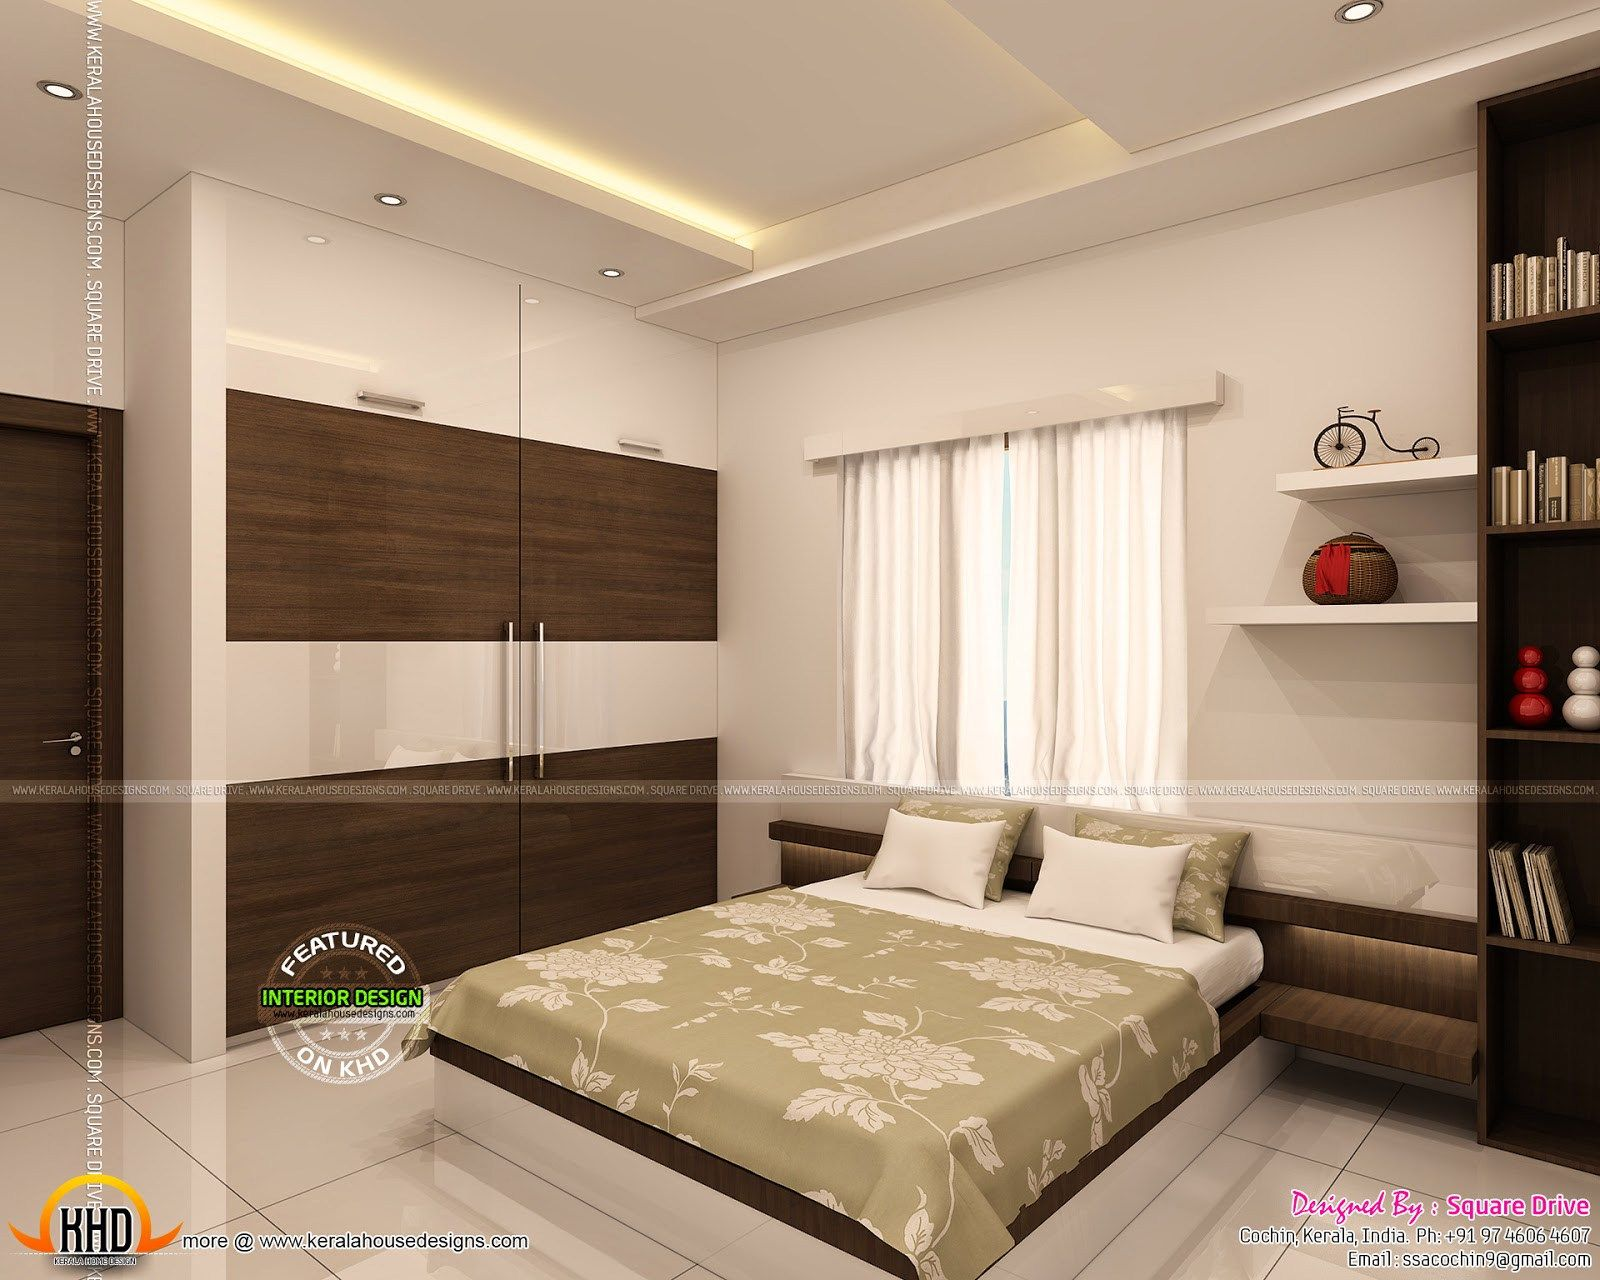 trendy bedroom interior designs kerala home design floor plans